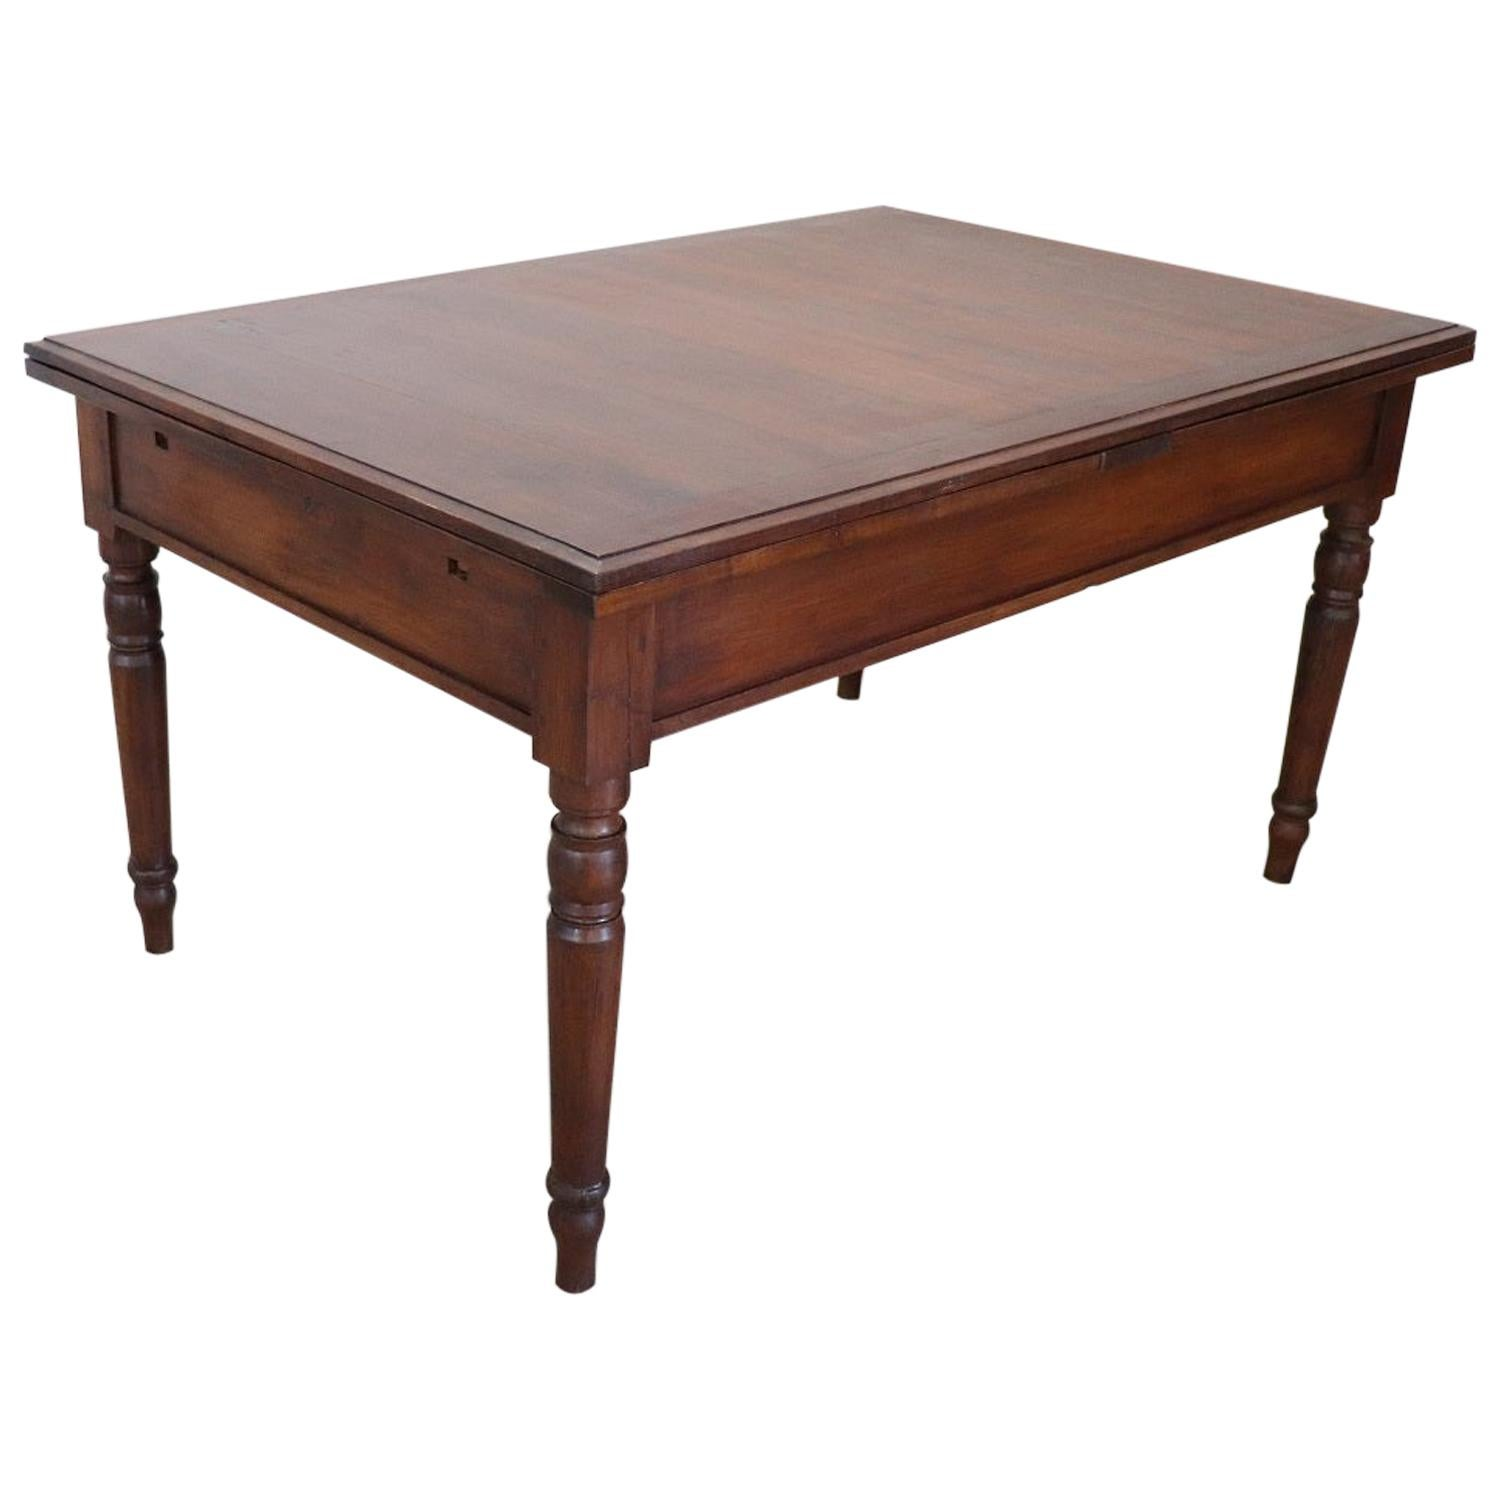 19th Century Italian Solid Walnut Extendable Antique Dining Room Table